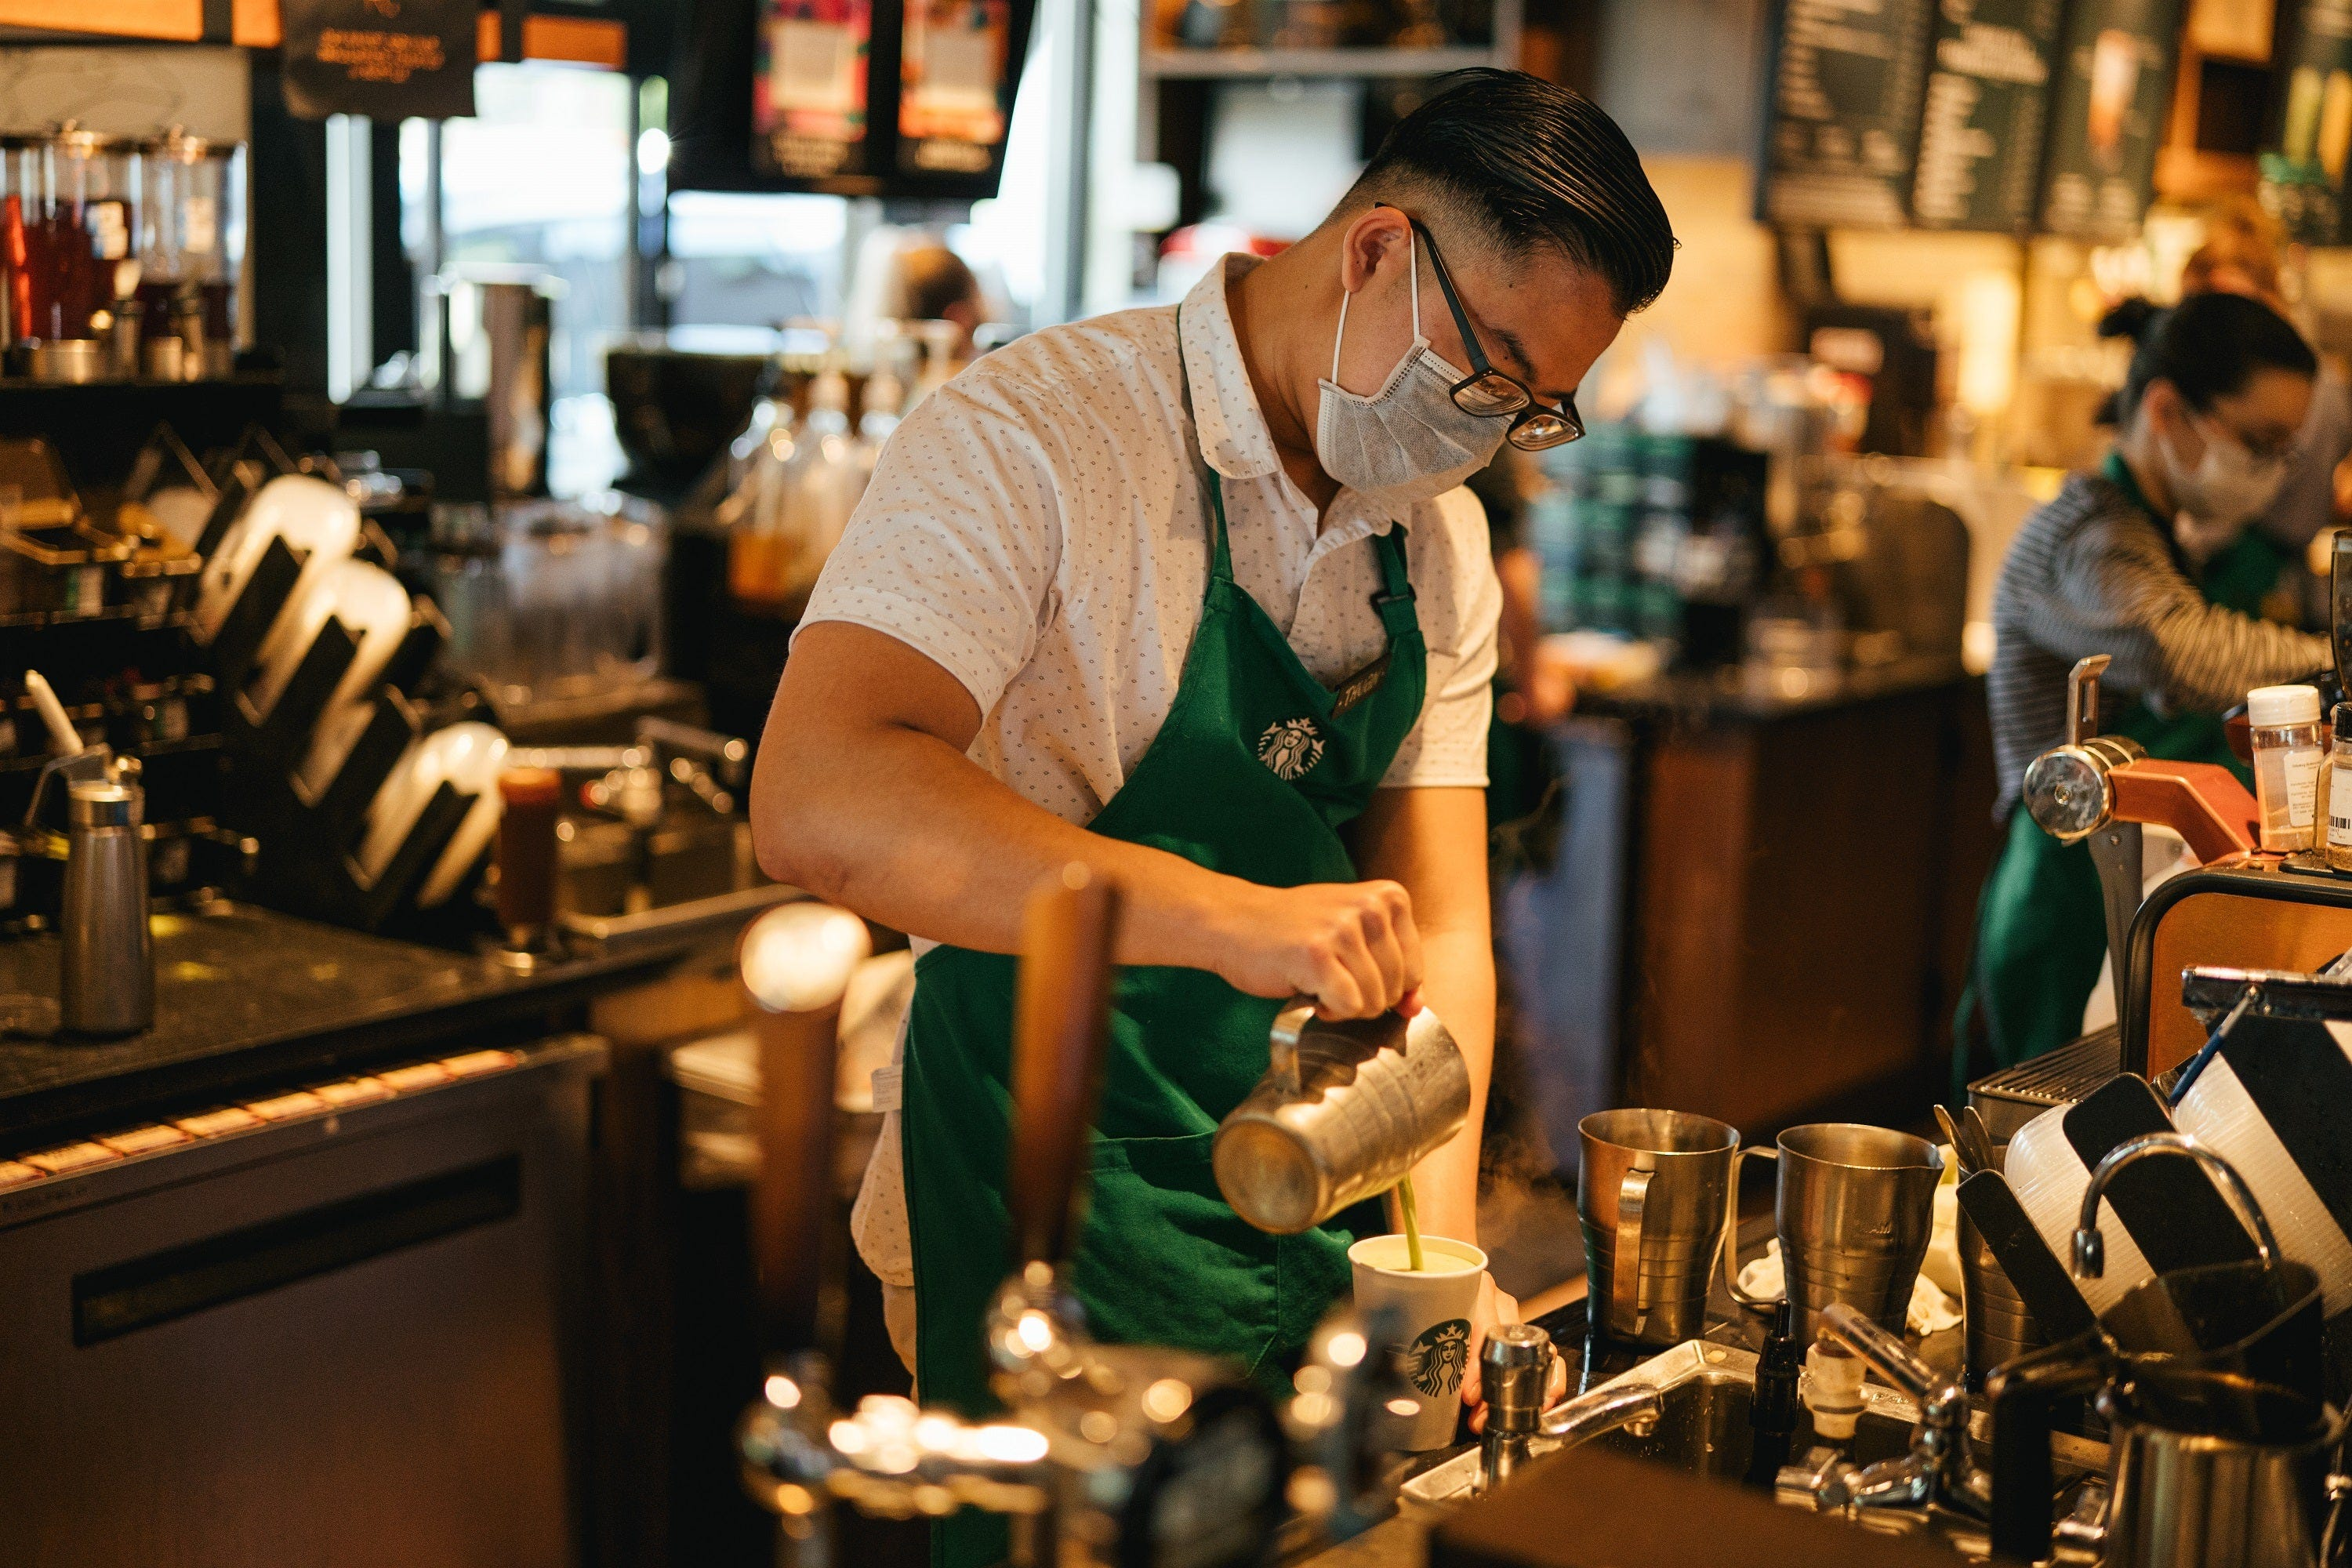 Barista gets big tip after customer Facebook complaint